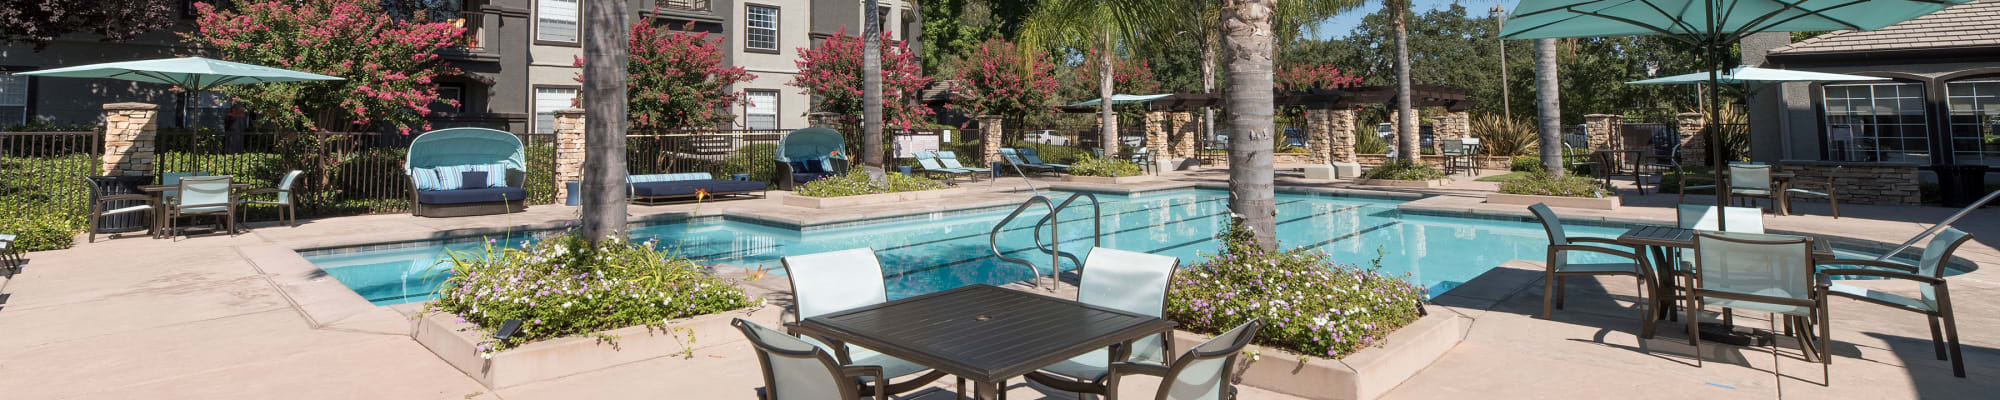 Amenities at River Oaks Apartment Homes in Vacaville, California